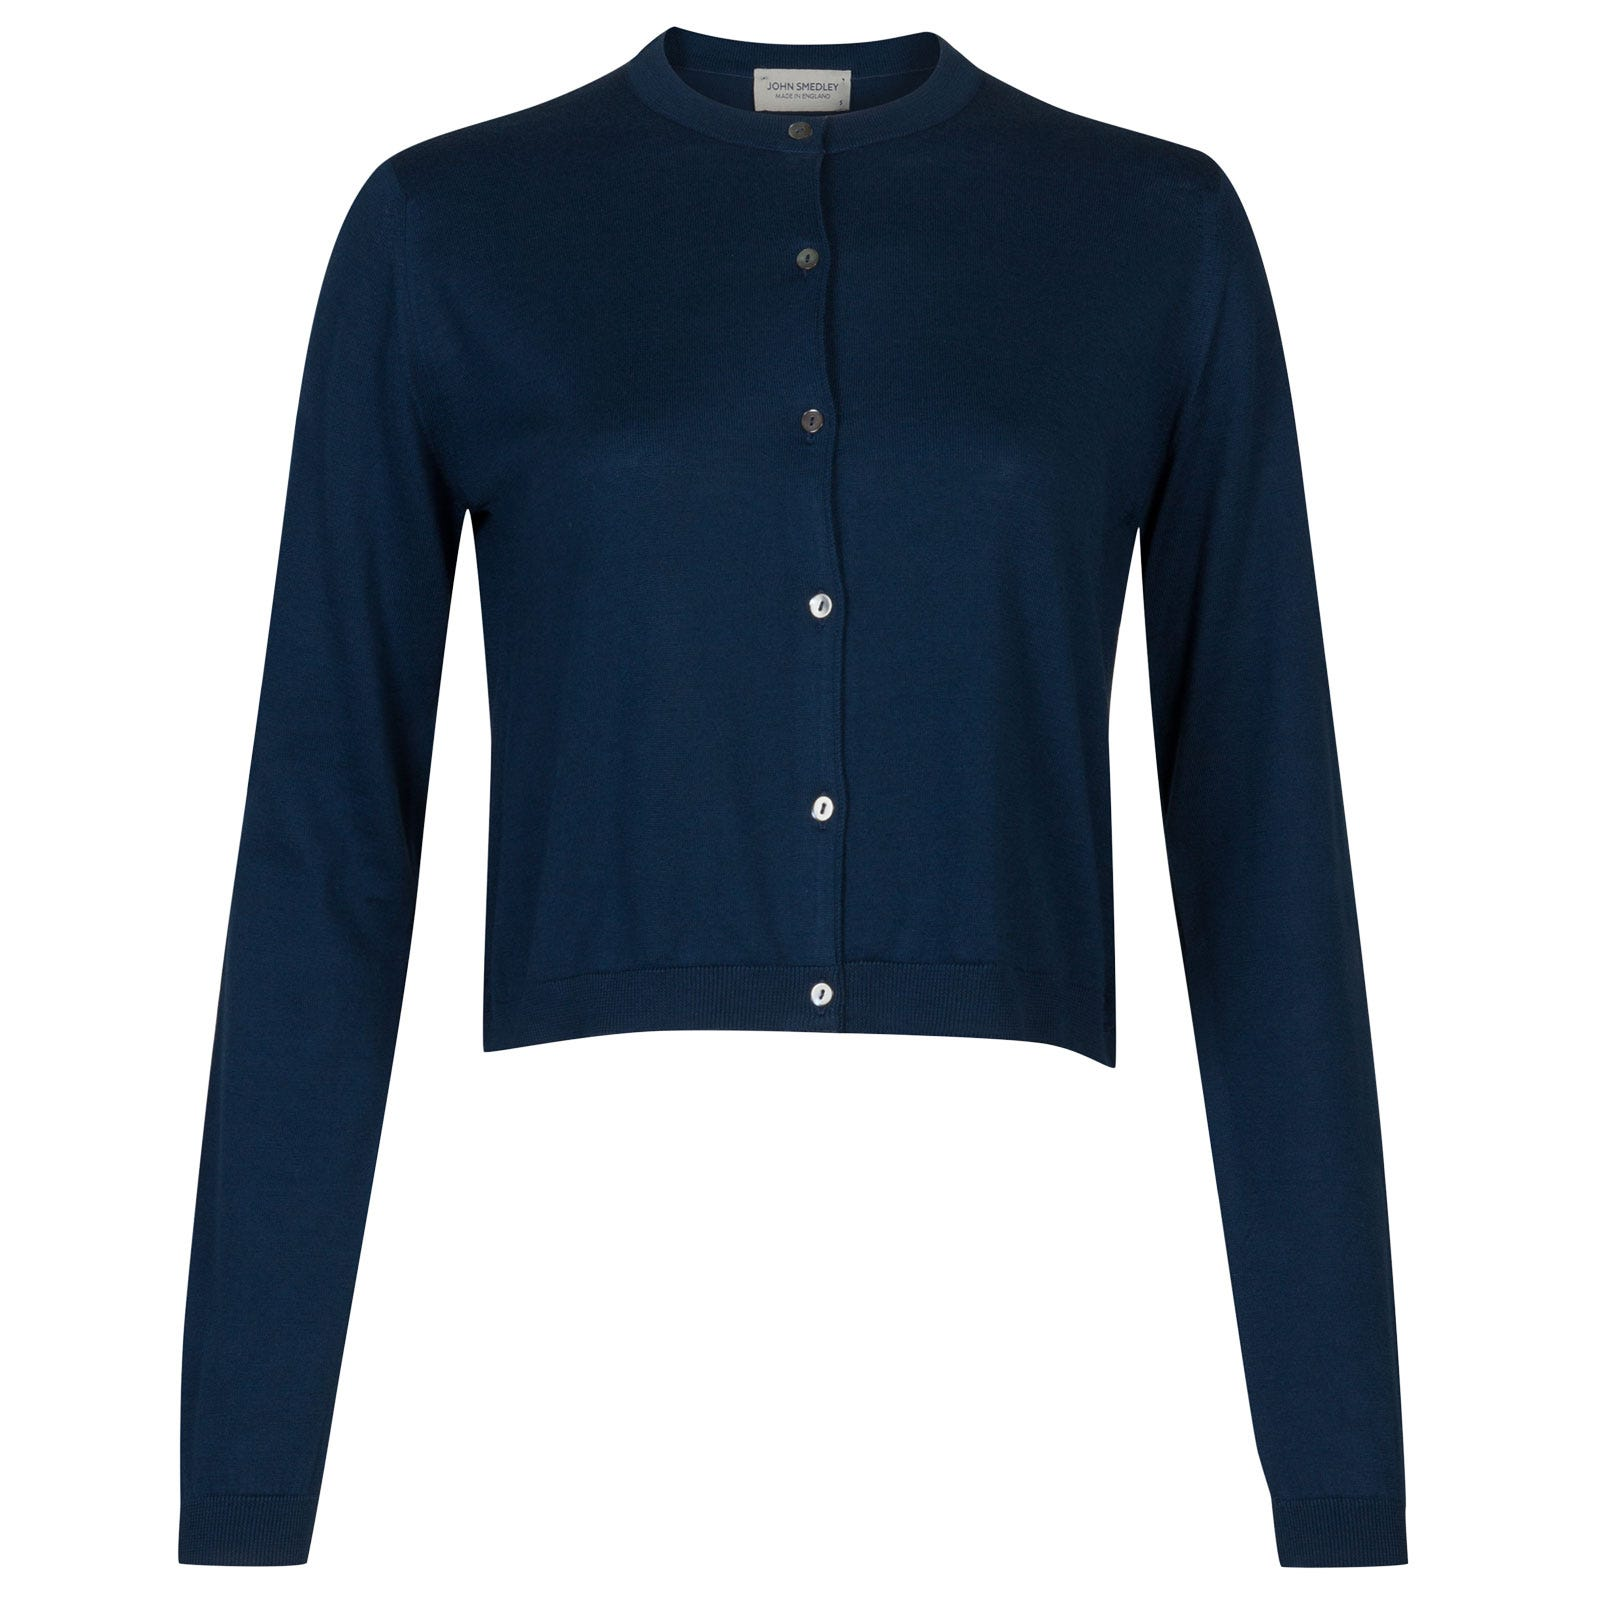 John Smedley Bowes Sea Island Cotton Cardigan in Indigo-L